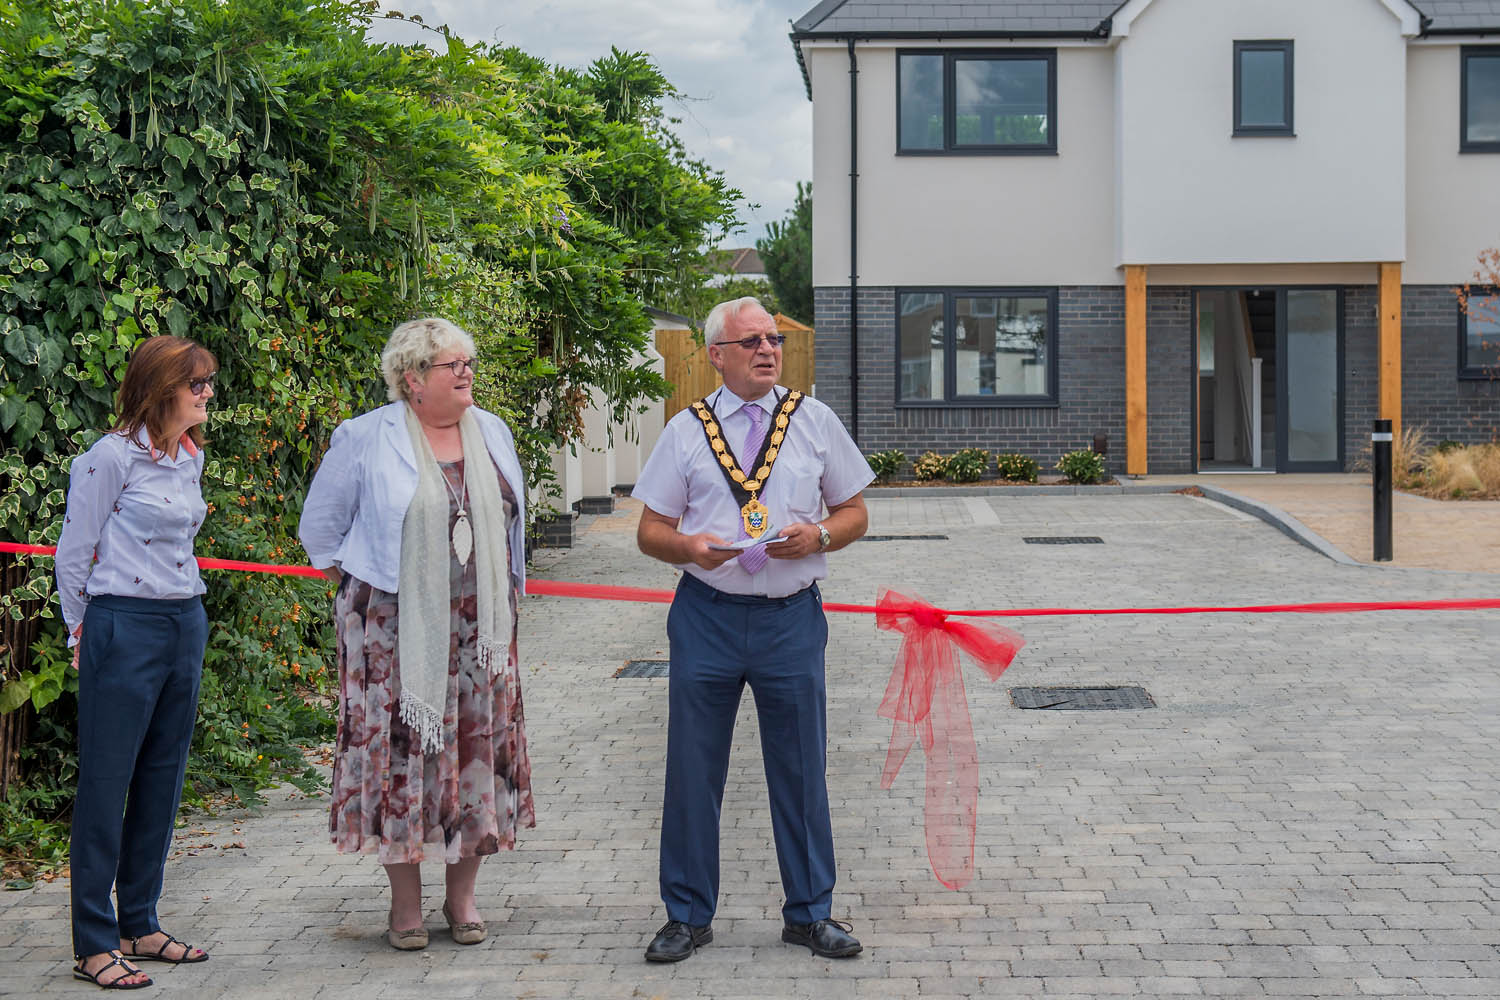 The Mayor opens a new Rosebery development in Epsom. Guy Bell, 07771 786236, guy@gbphotos.com